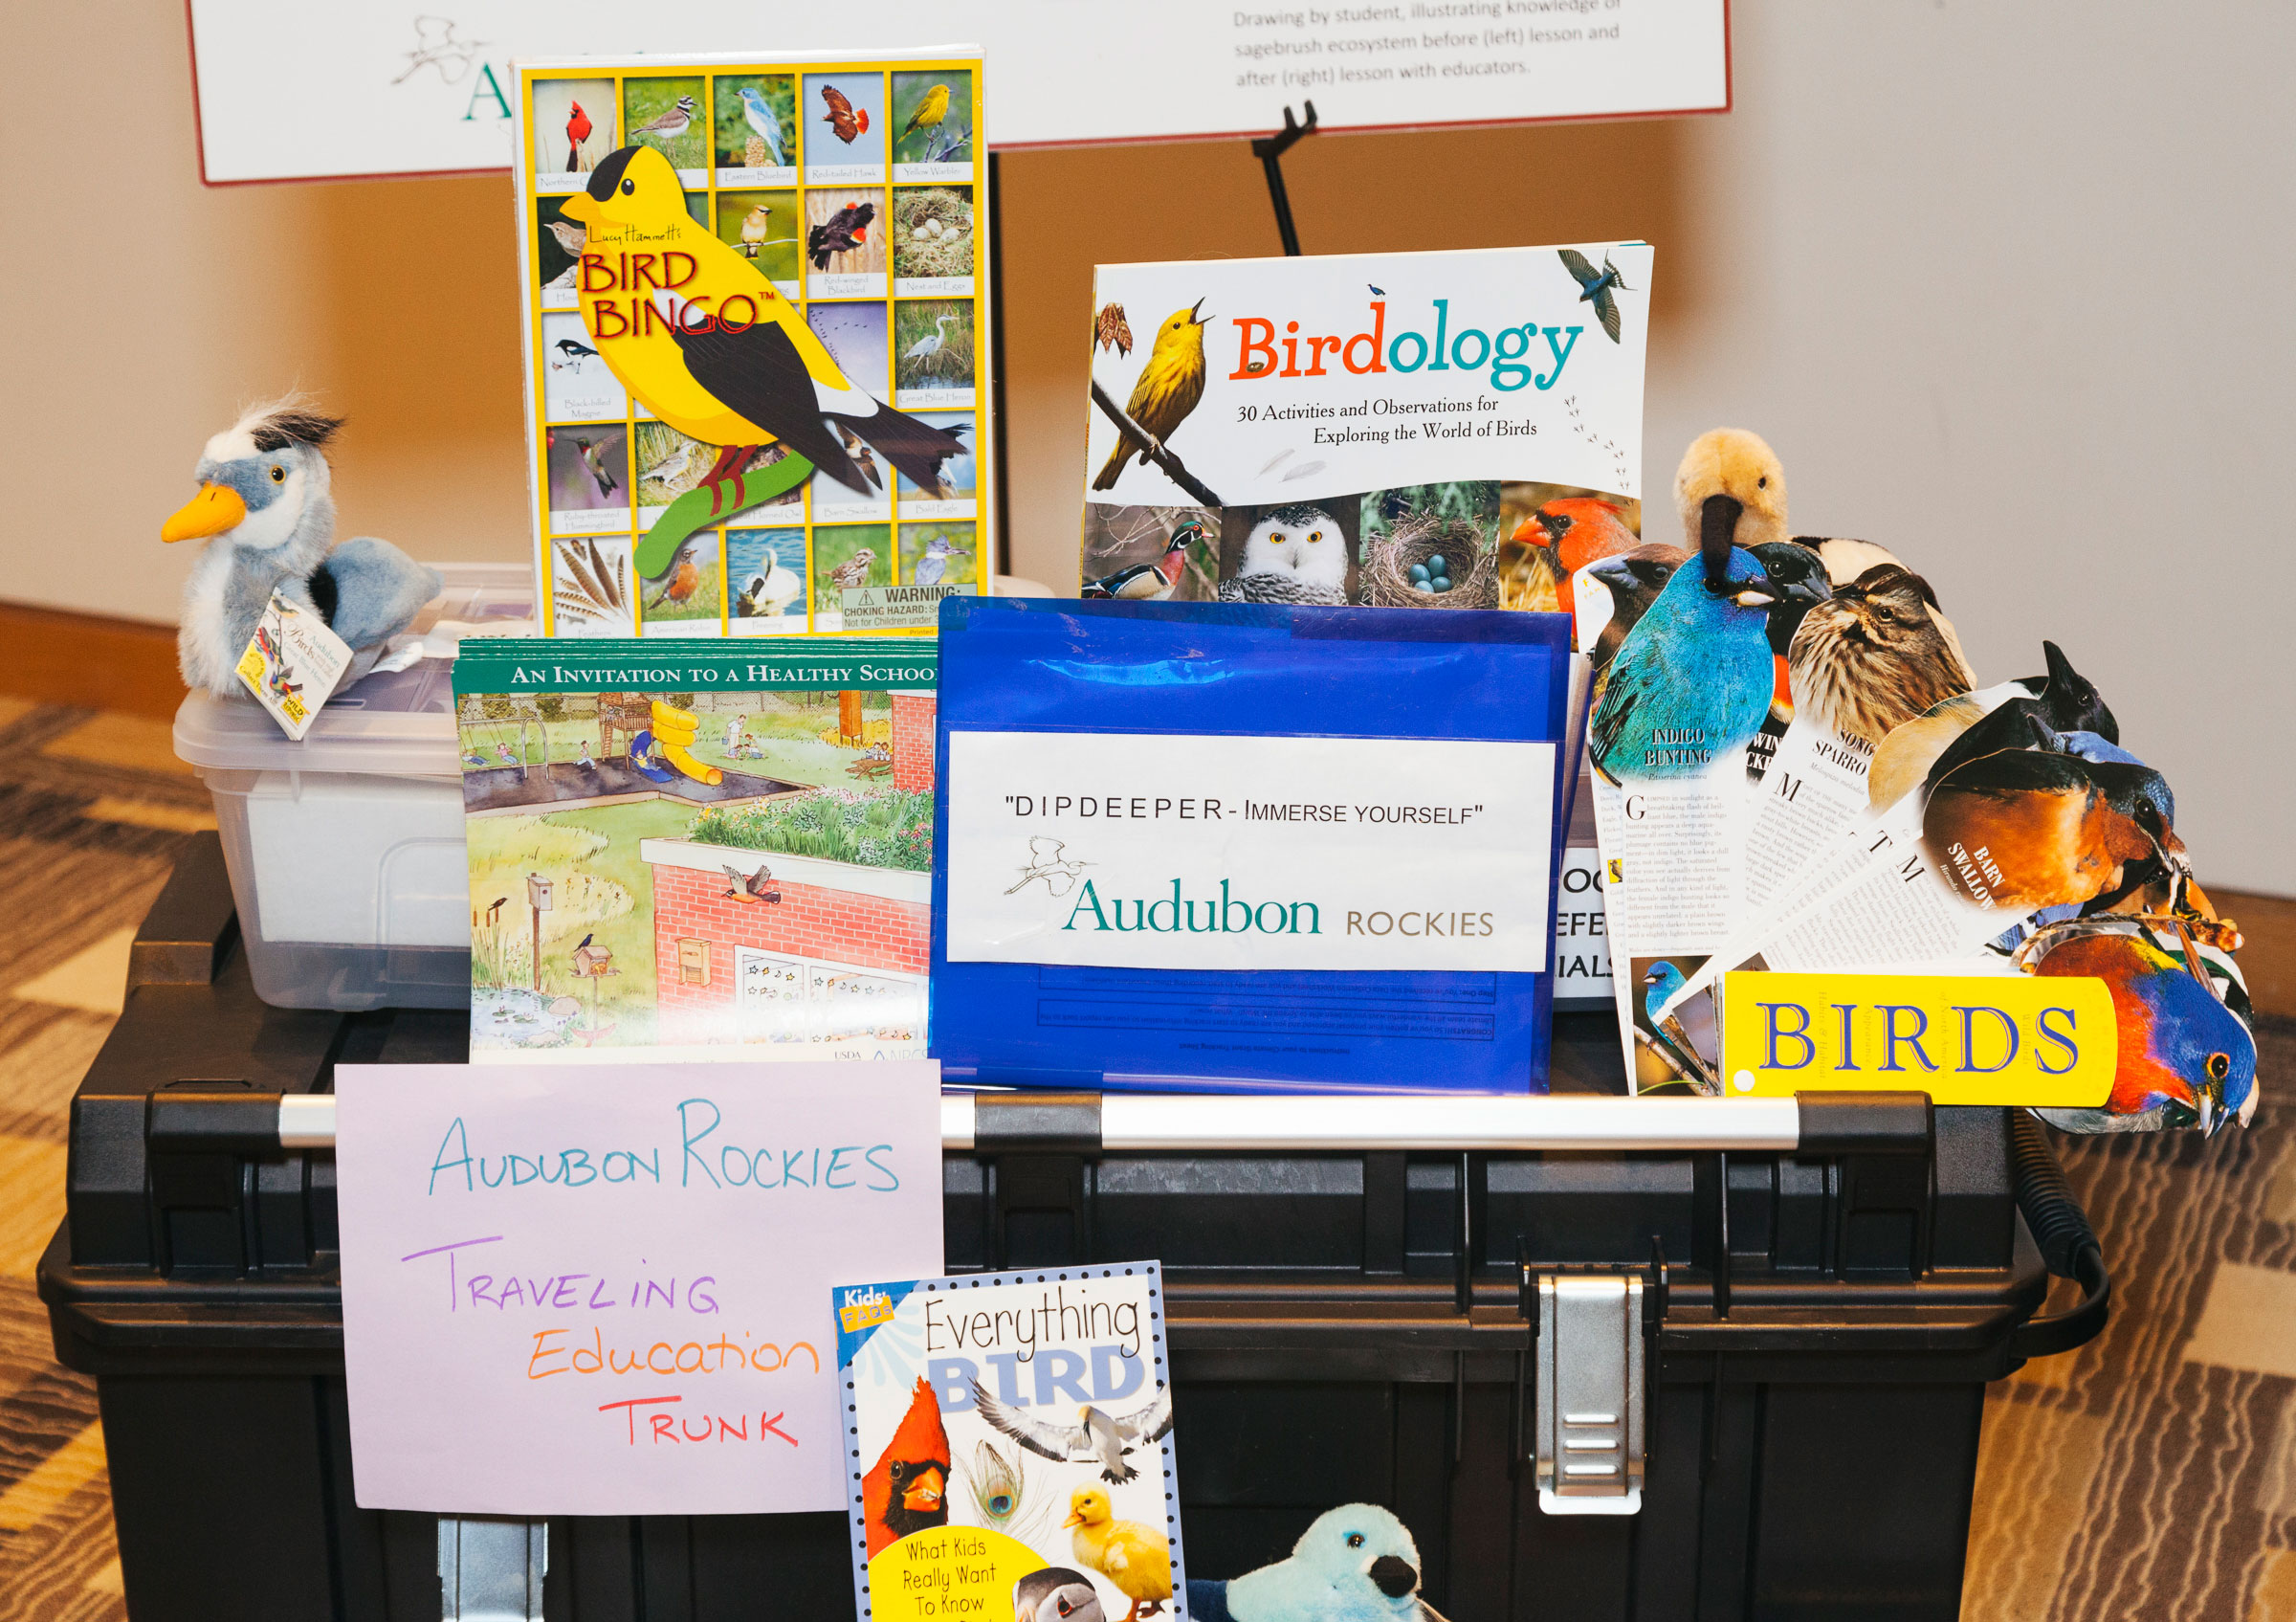 A display of some of the activies from Audubon Rockies' Birds and Climate Educational Traveling Trunk. Morgan Rachel Levy